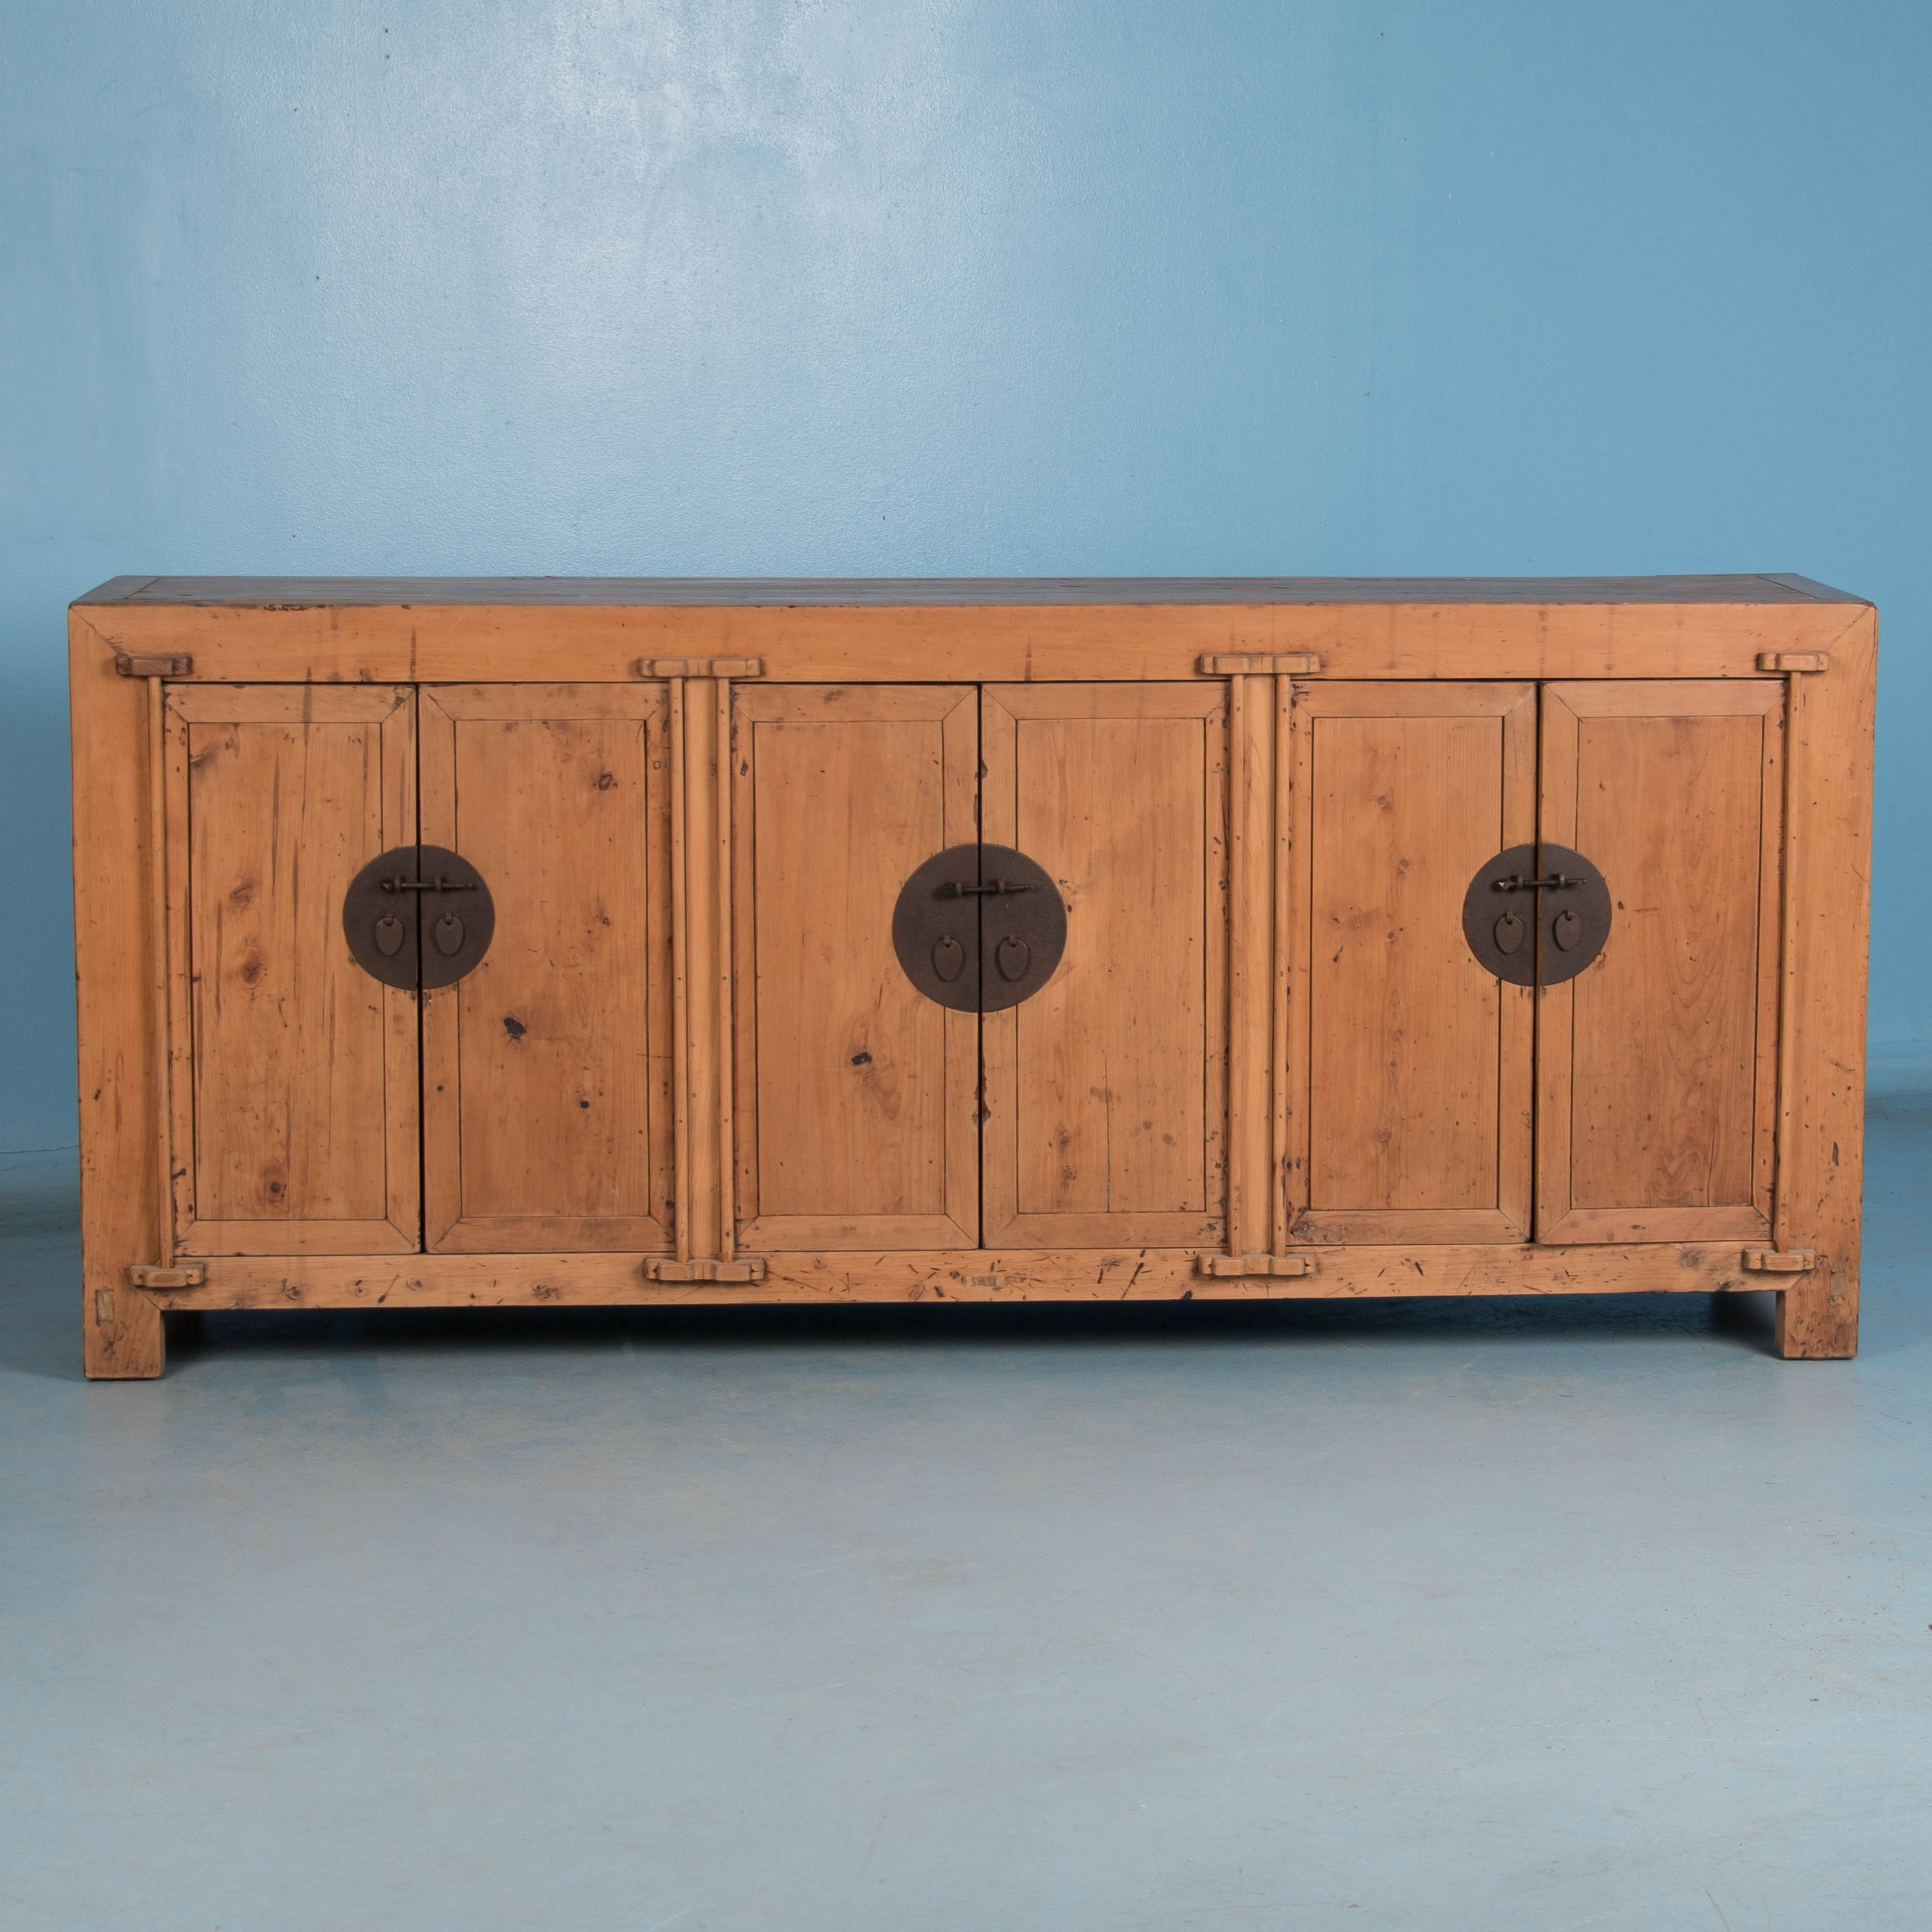 Sideboards | Scandinavian Antiques | Antique Furniture For Sale with regard to Natural South Pine Sideboards (Image 26 of 30)